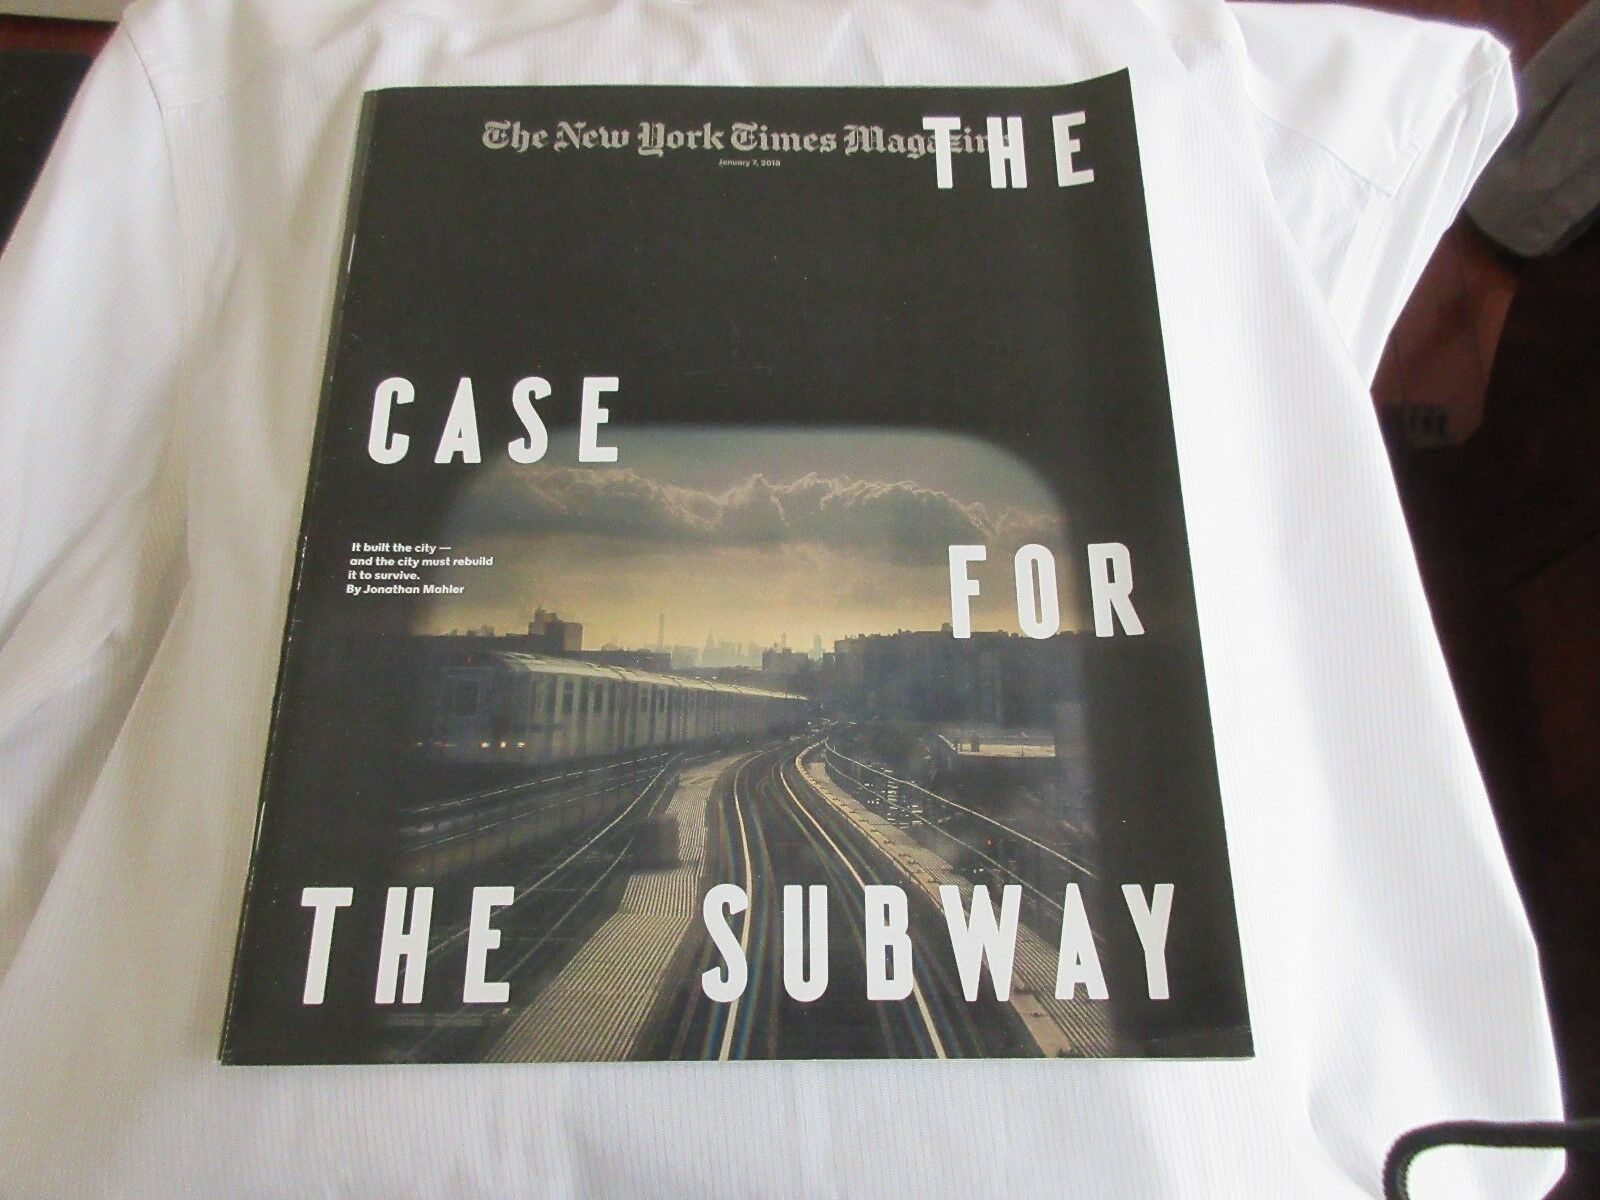 NYC's Subway , The Case For The Subway , New York Times